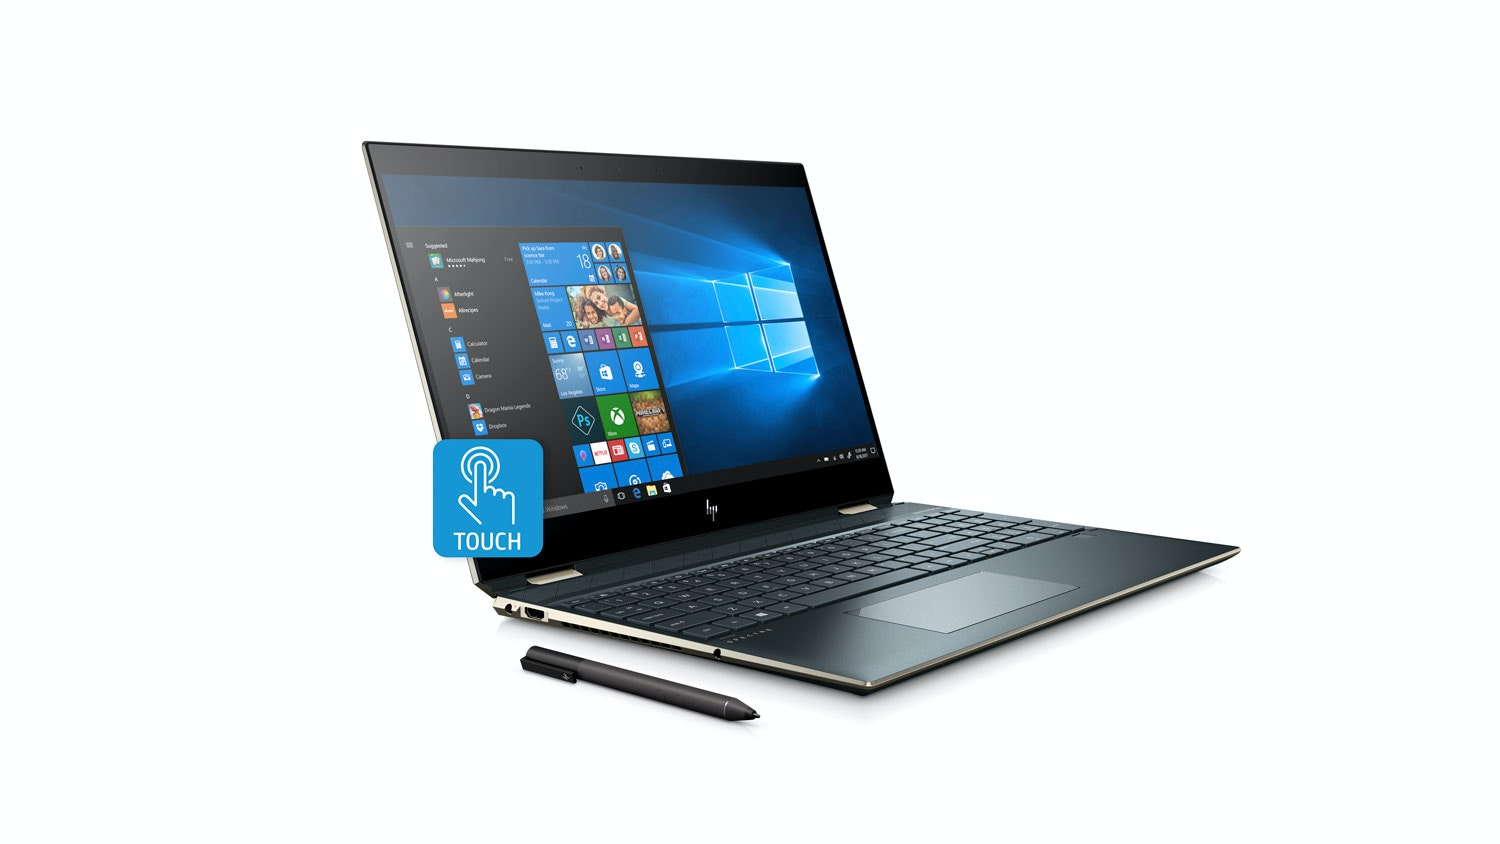 HP Spectre x360 15-DF0012TX 2-in-1 Laptop - Left